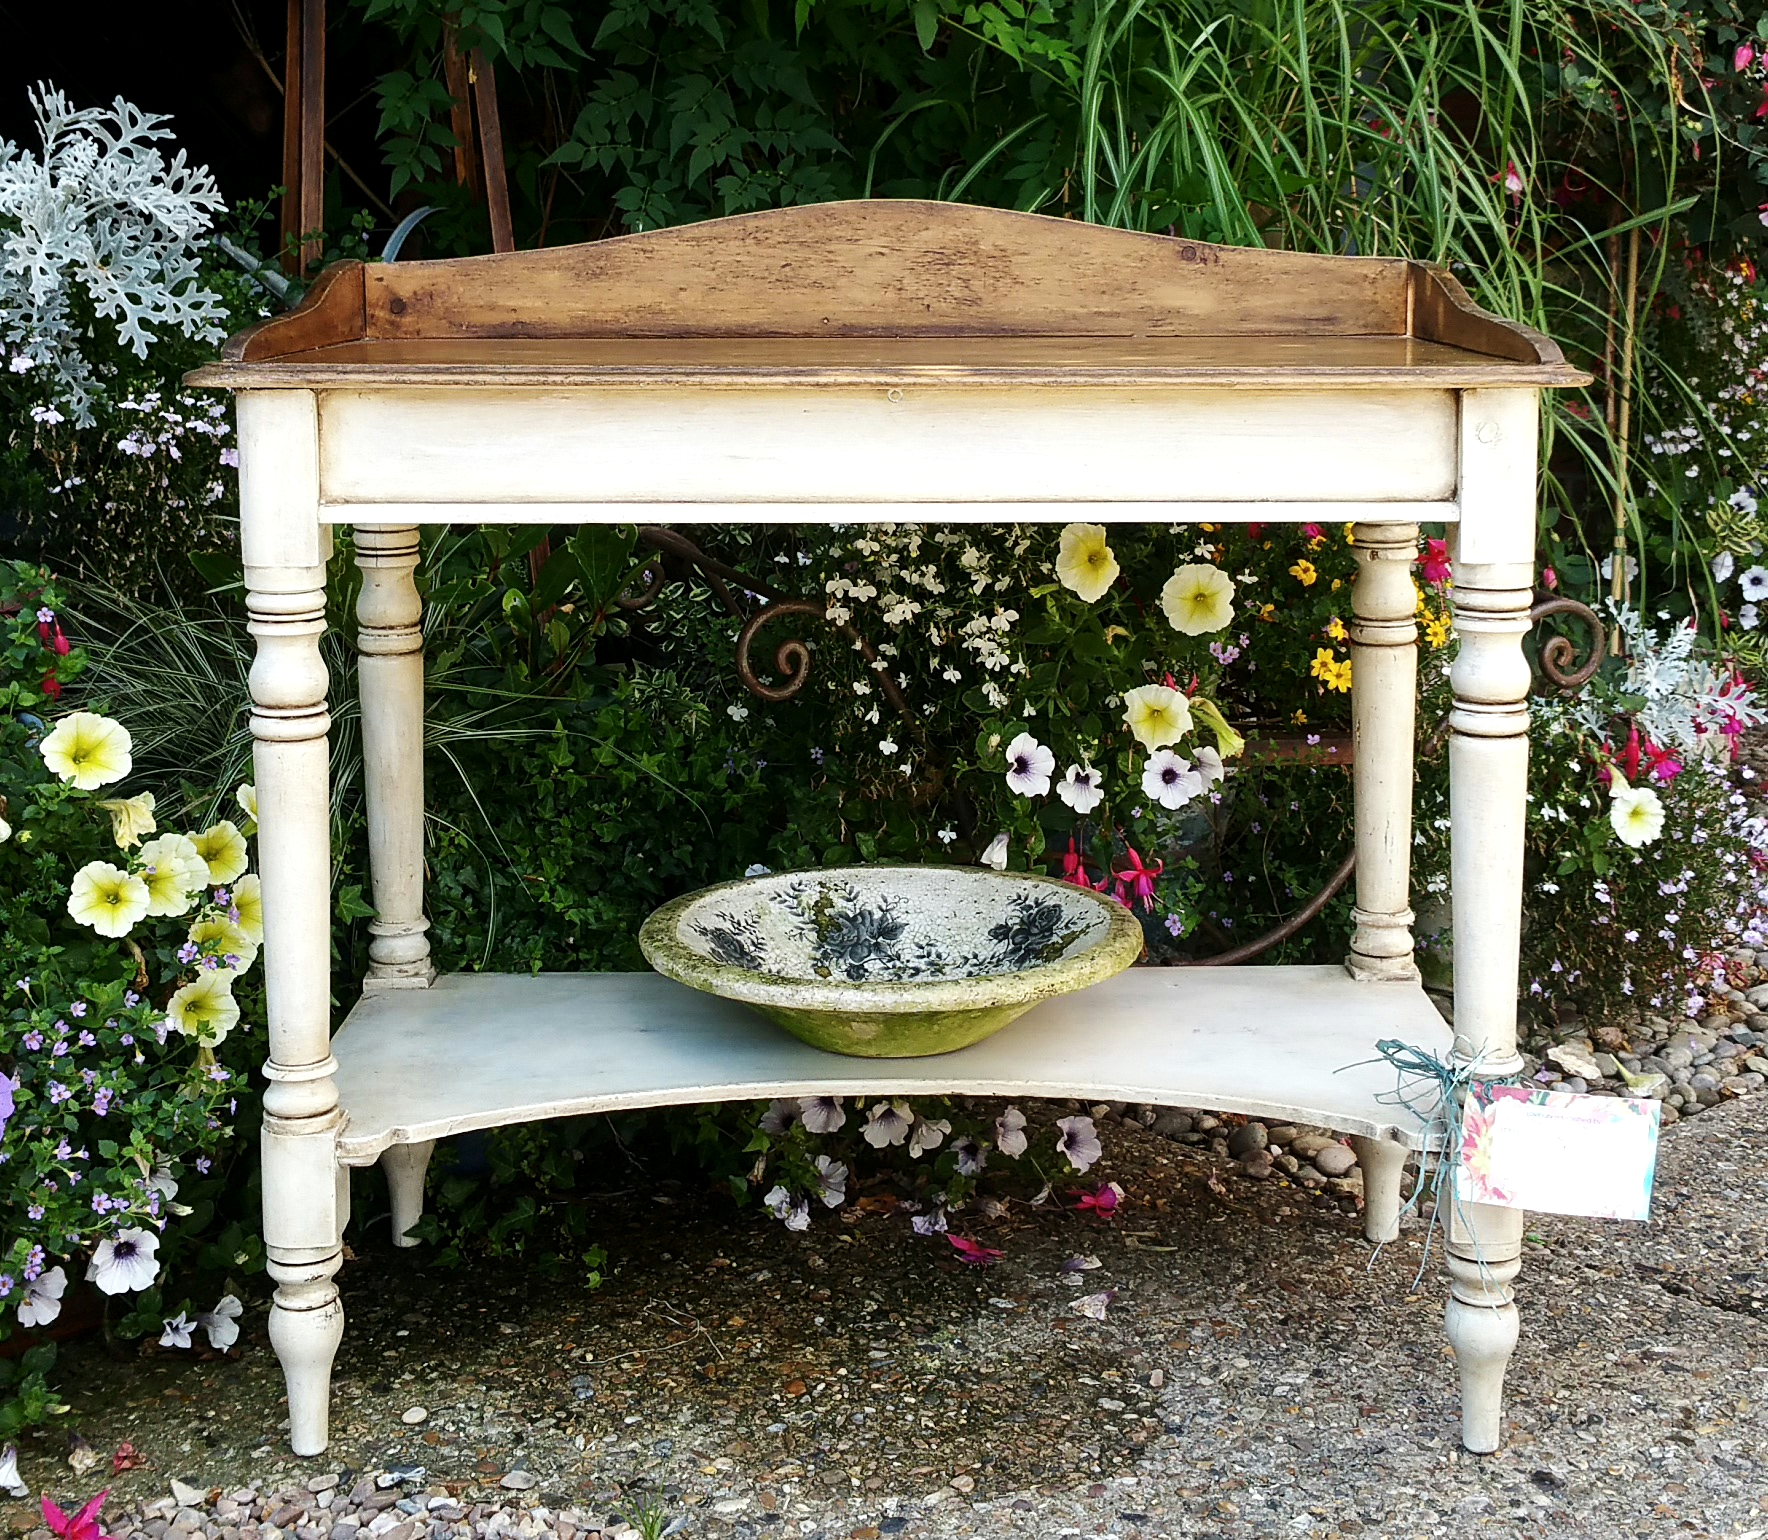 The Simple Washstand